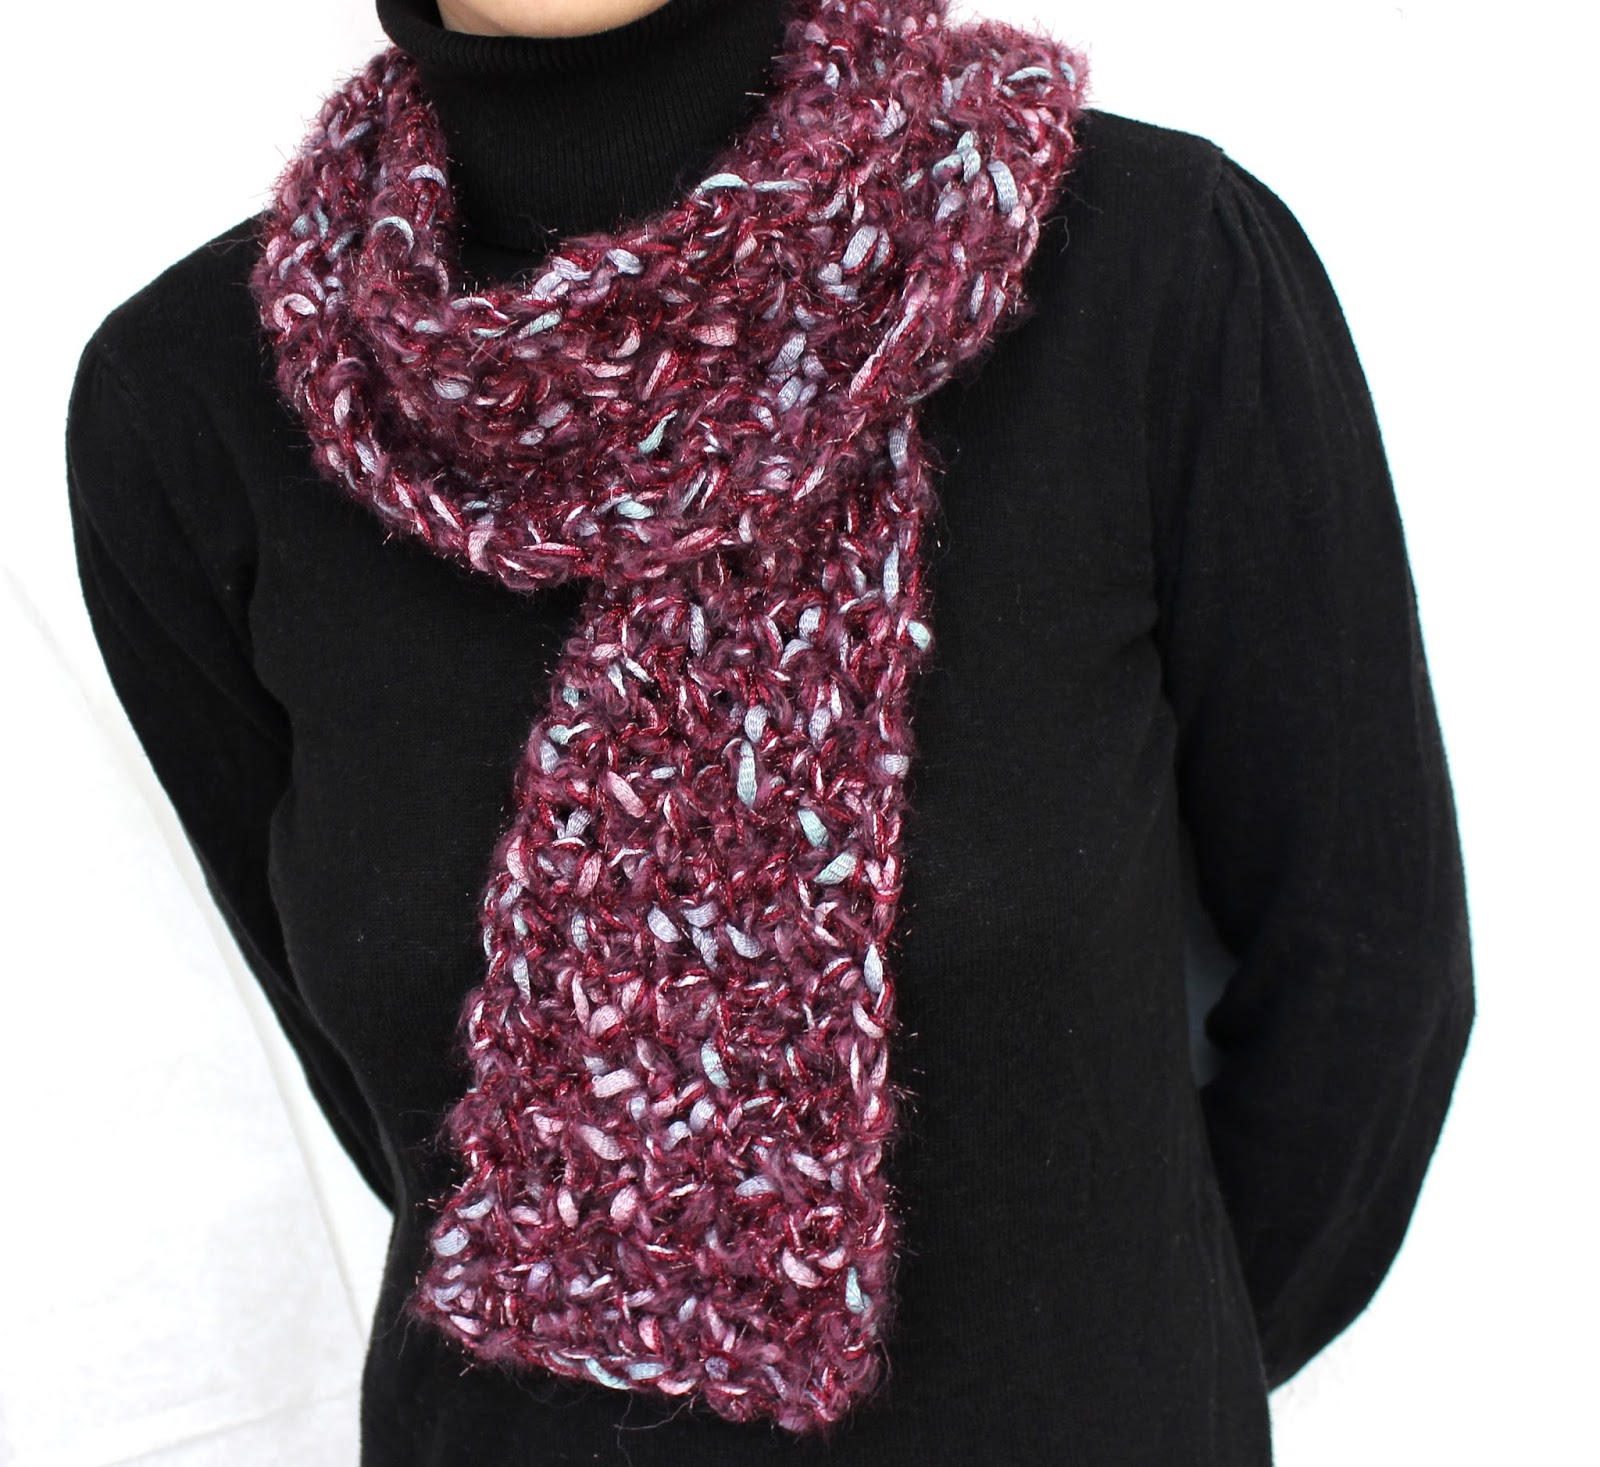 Beauty Crochet Pattern: EASY PRETTY CROCHET SCARF PATTERN